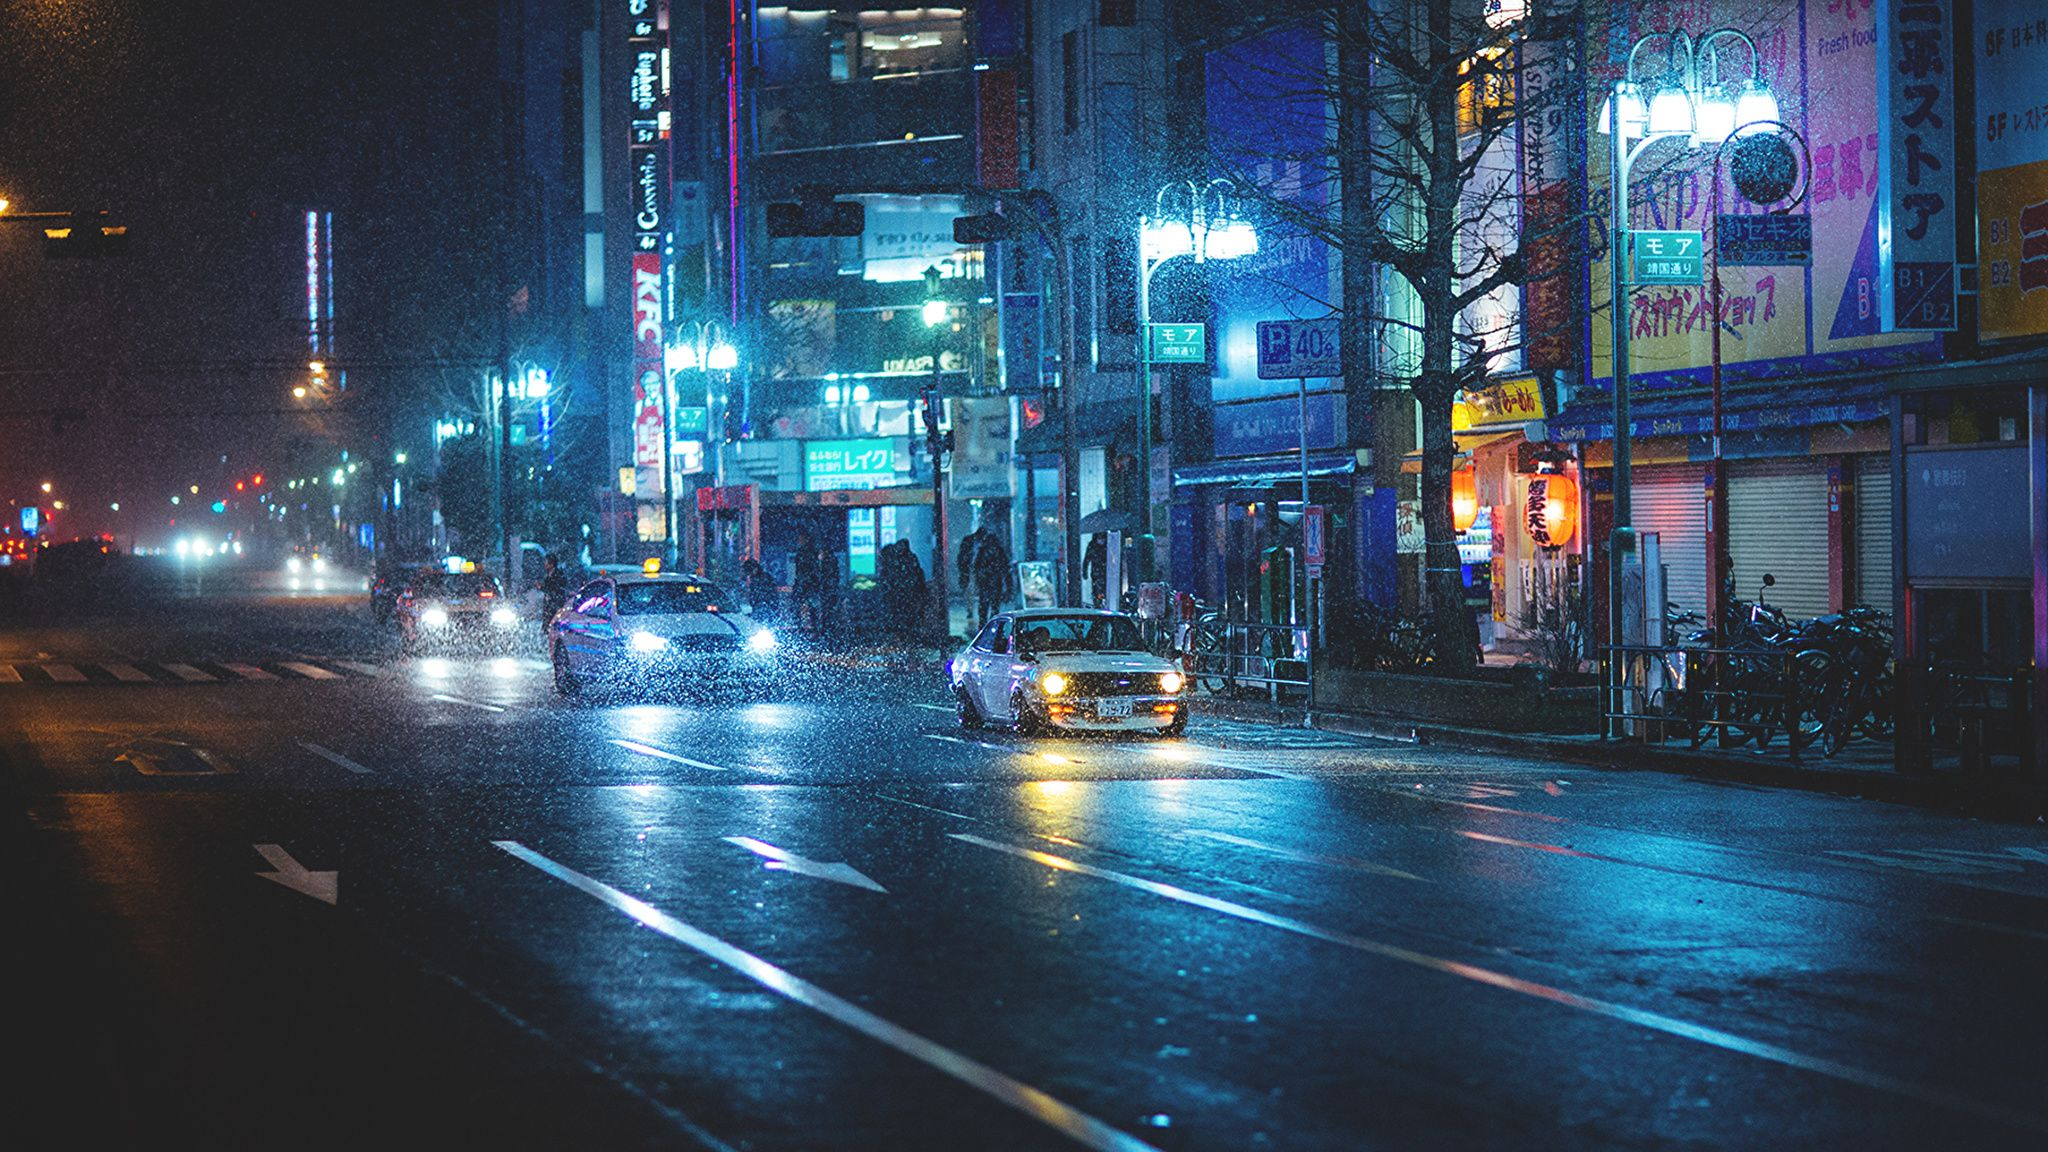 Japan Street Night Wallpapers Top Free Japan Street Night Backgrounds Wallpaperaccess